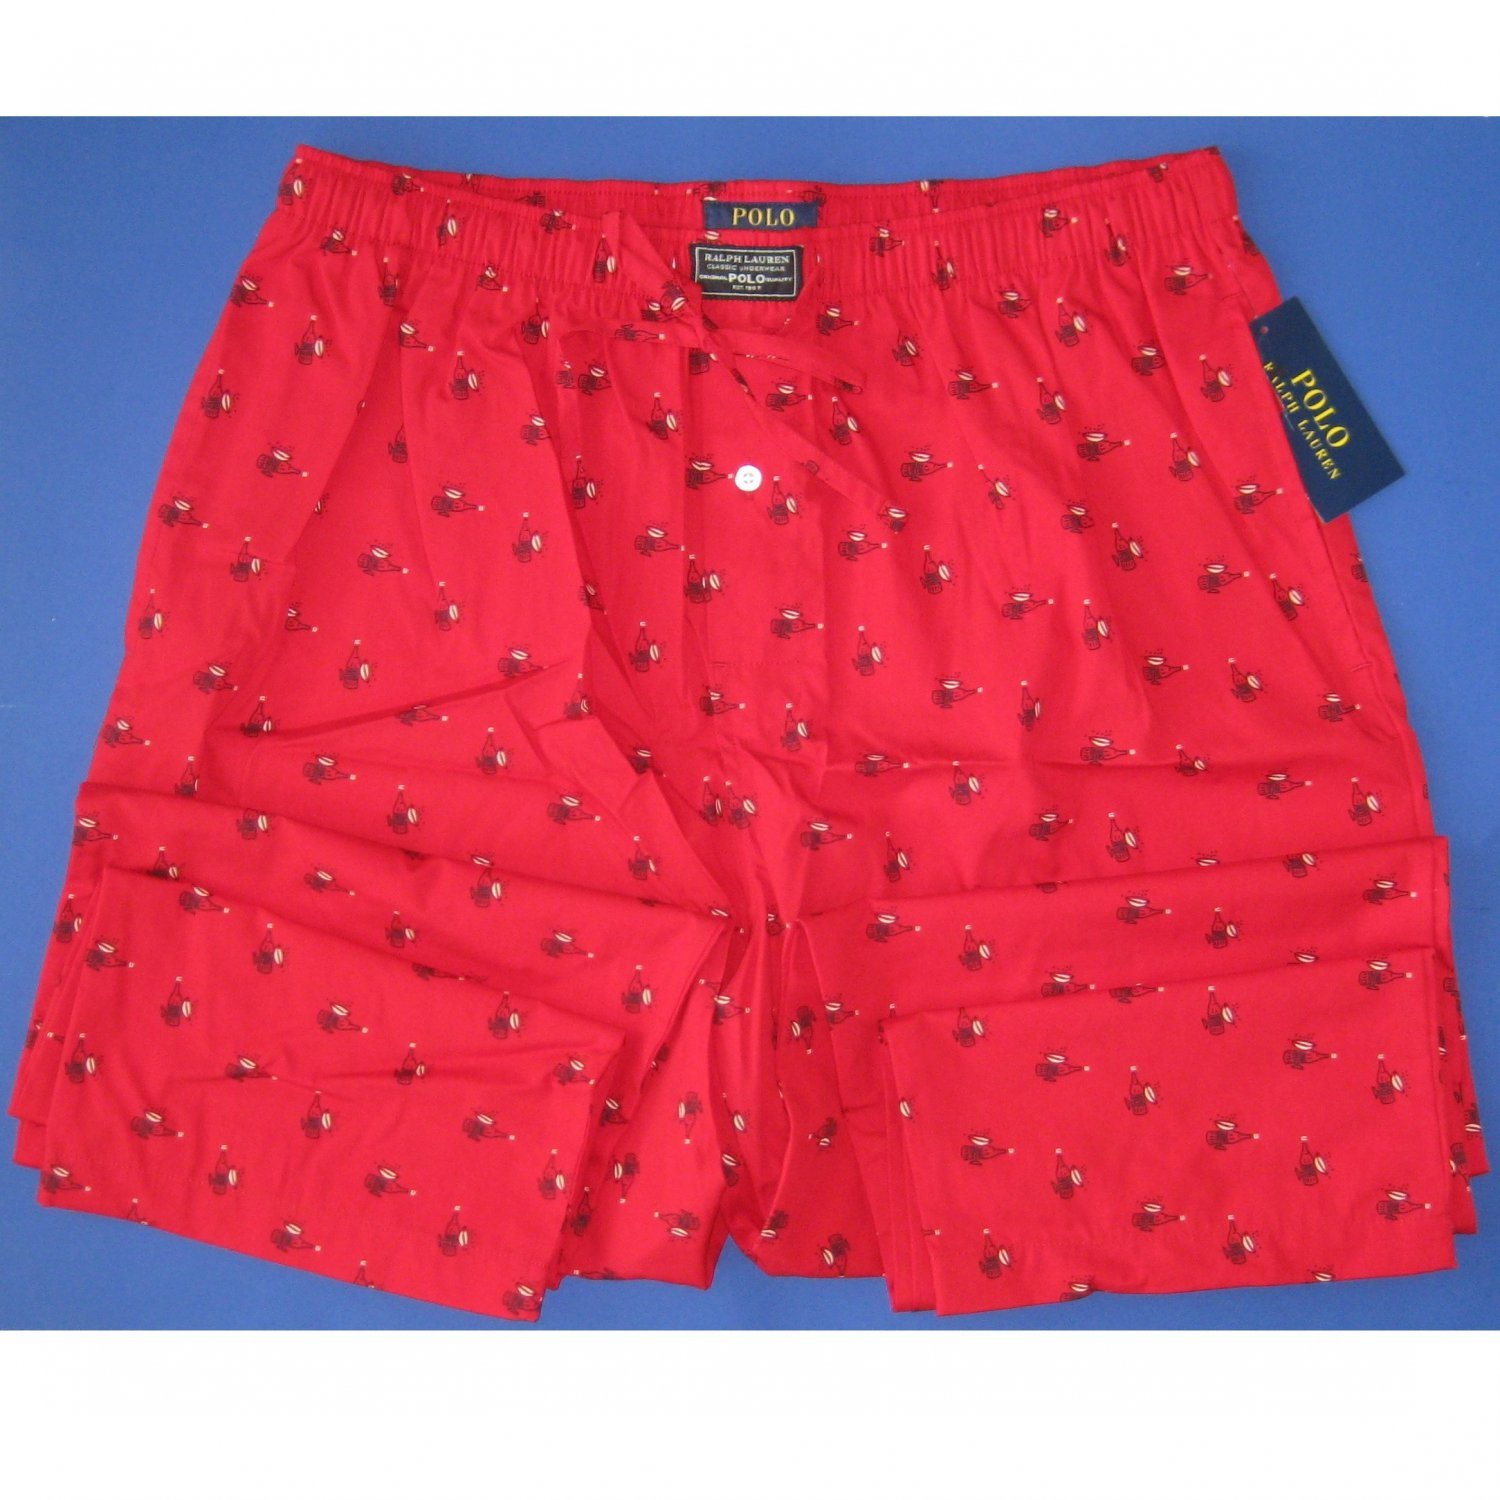 NWT Polo Ralph Lauren 100% Woven Cotton Red Allover Champagne Print Pajama Lounge Pants - L